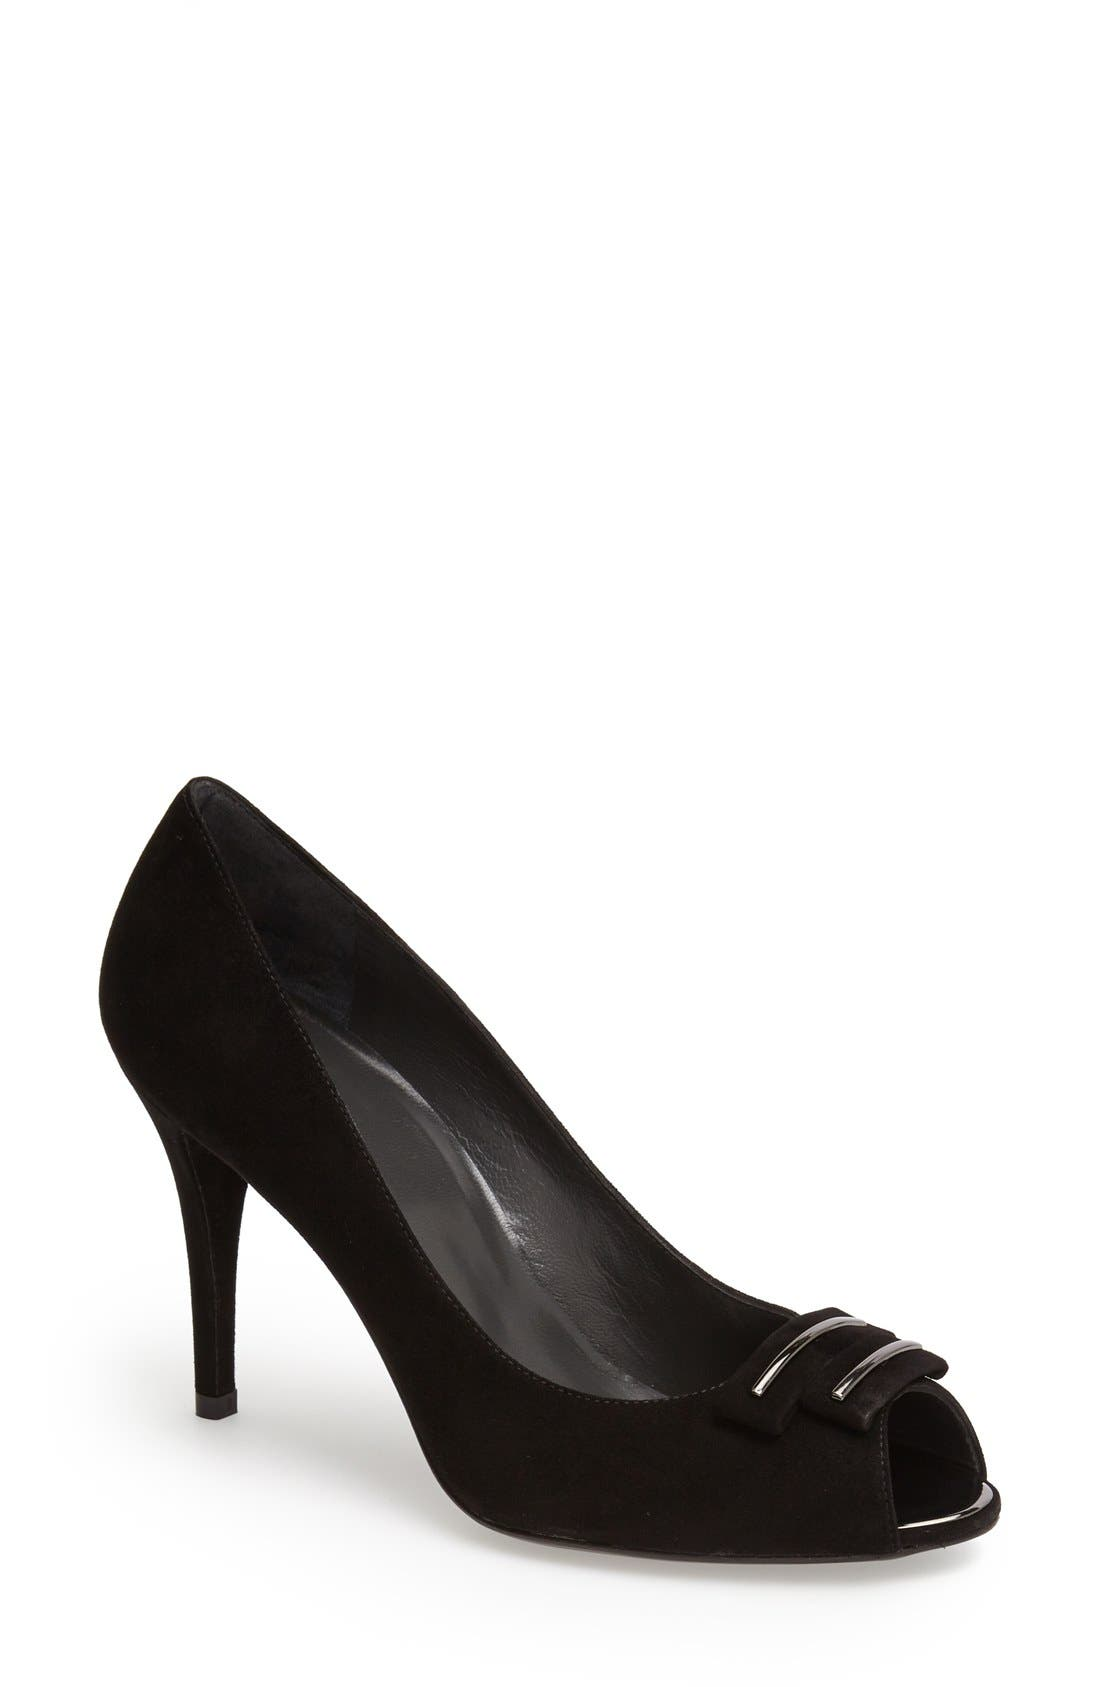 Alternate Image 1 Selected - Stuart Weitzman 'Baroque' Leather Pump (Women)